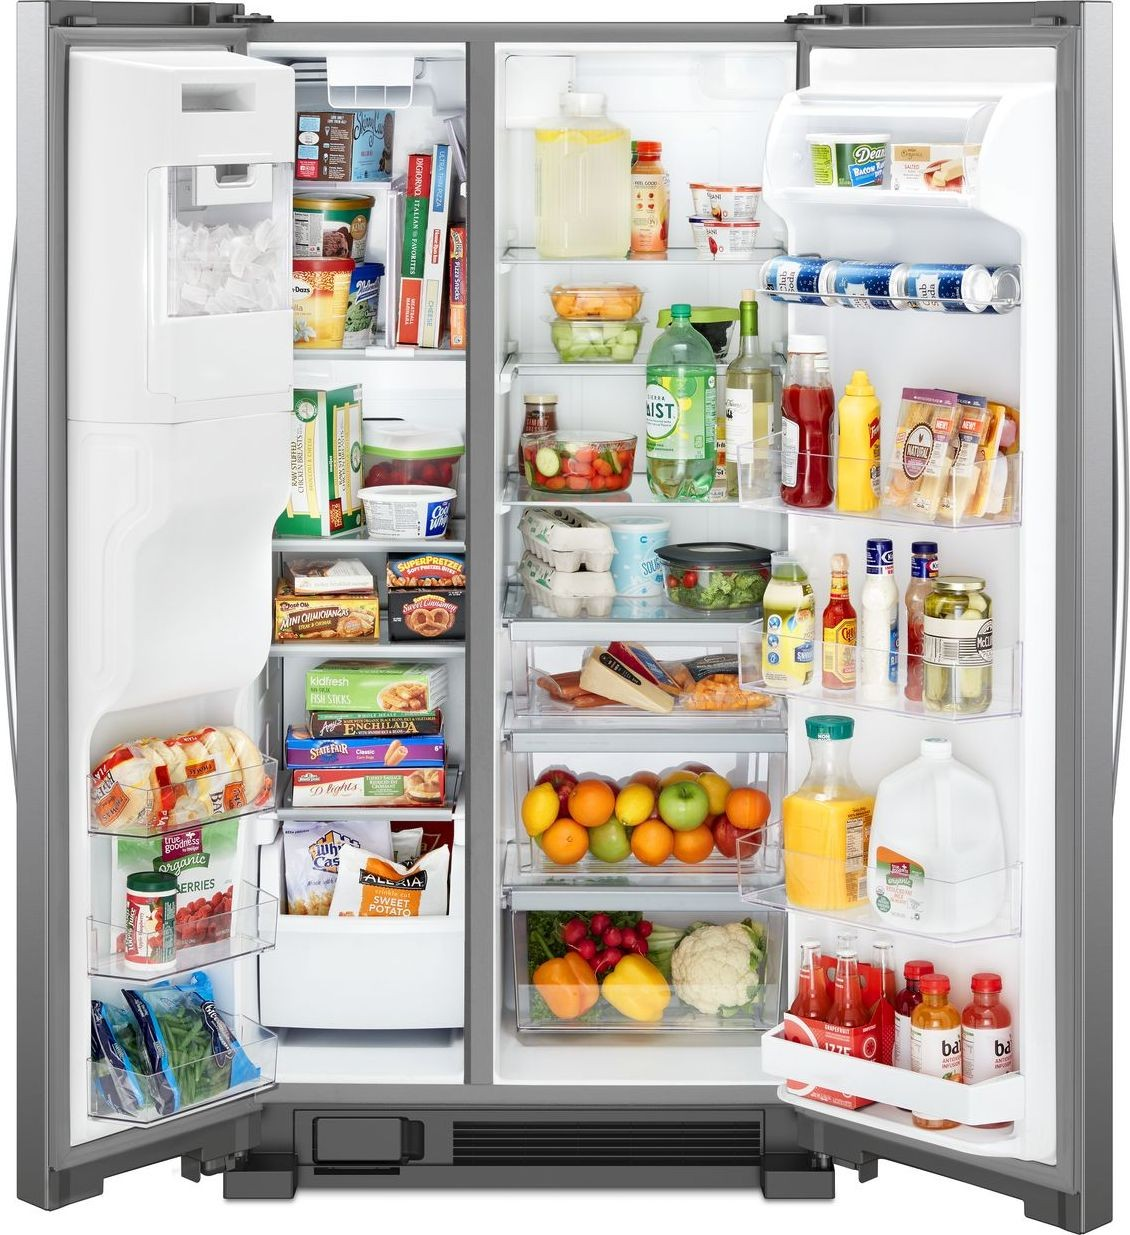 Whirlpool 25 Cu Ft Side By Refrigerator Stainless Steel